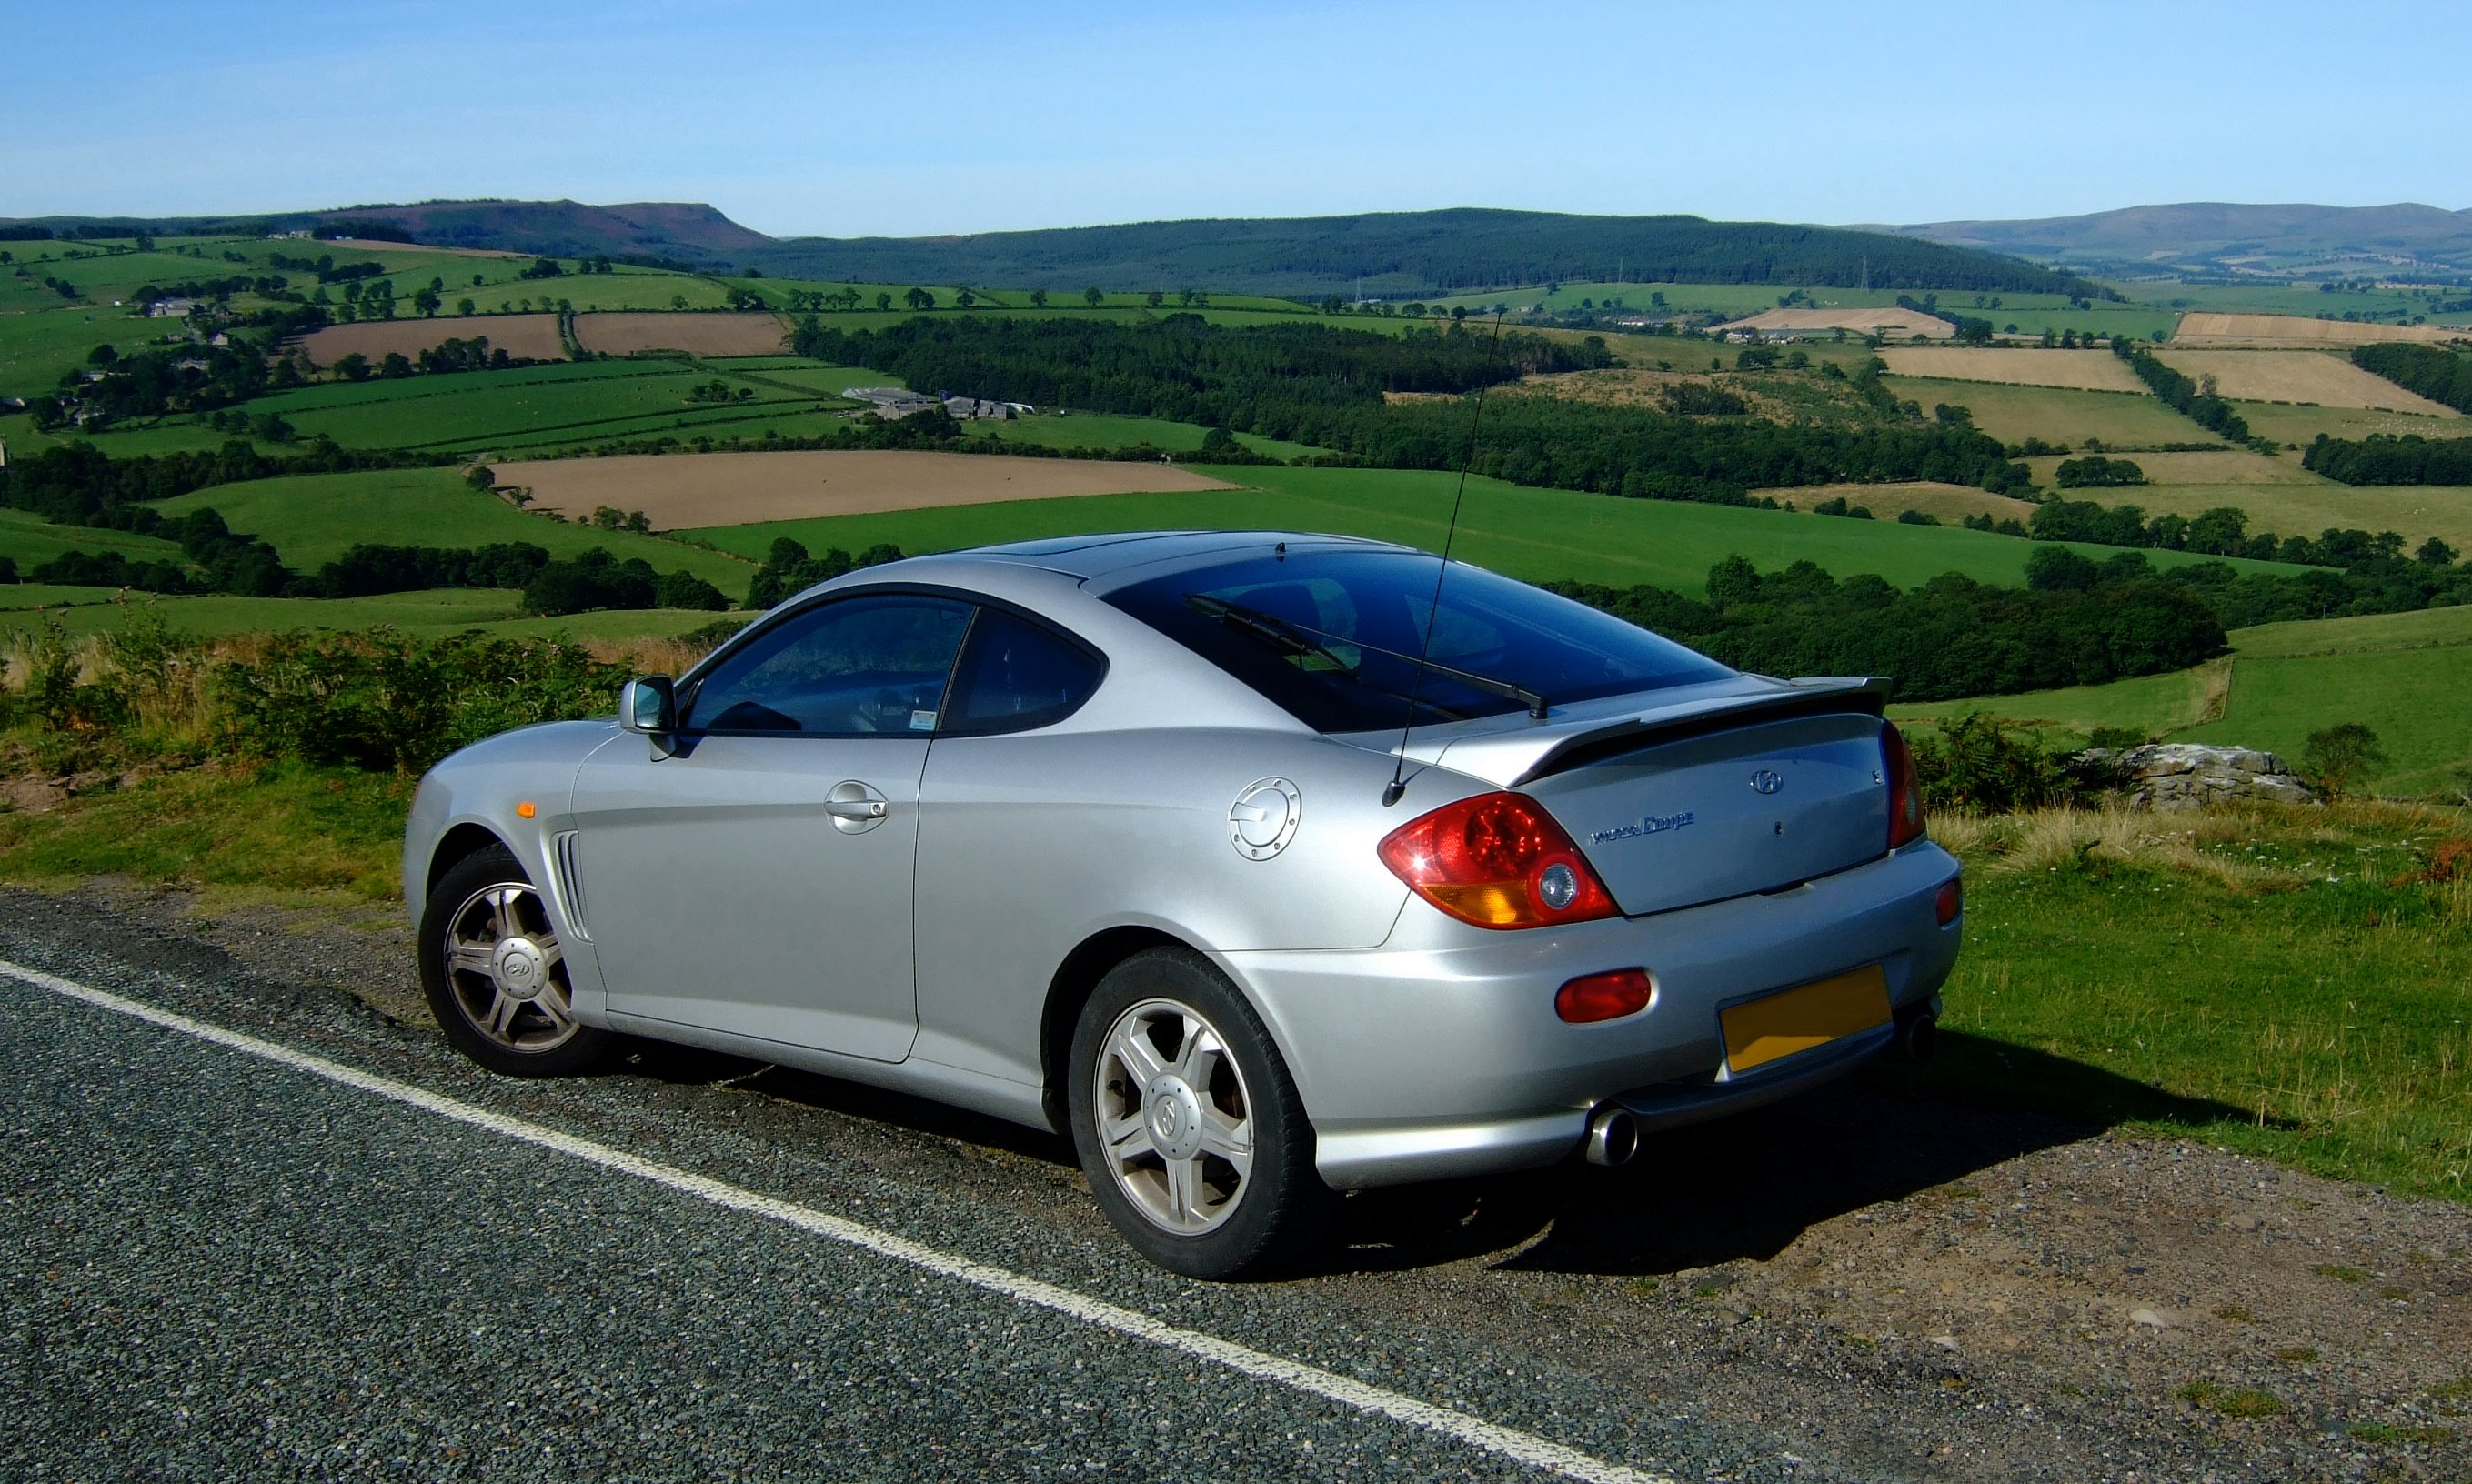 file hyundai coupe 2002 jpg wikipedia https en wikipedia org wiki file hyundai coupe 2002 jpg